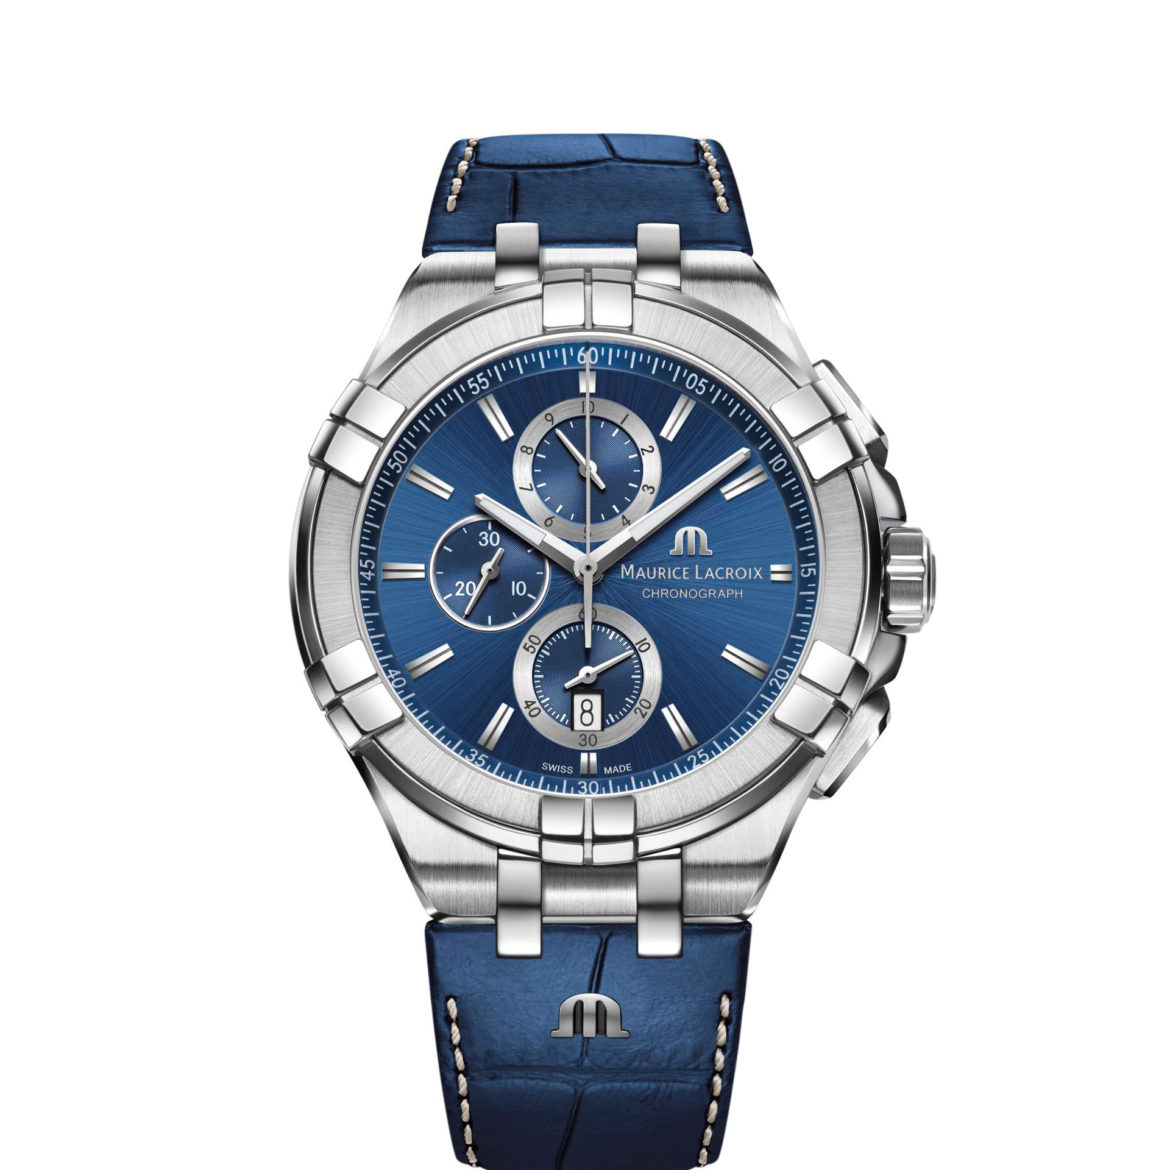 Maurice Lacroix Aikon Chronograph 44 mm in blue